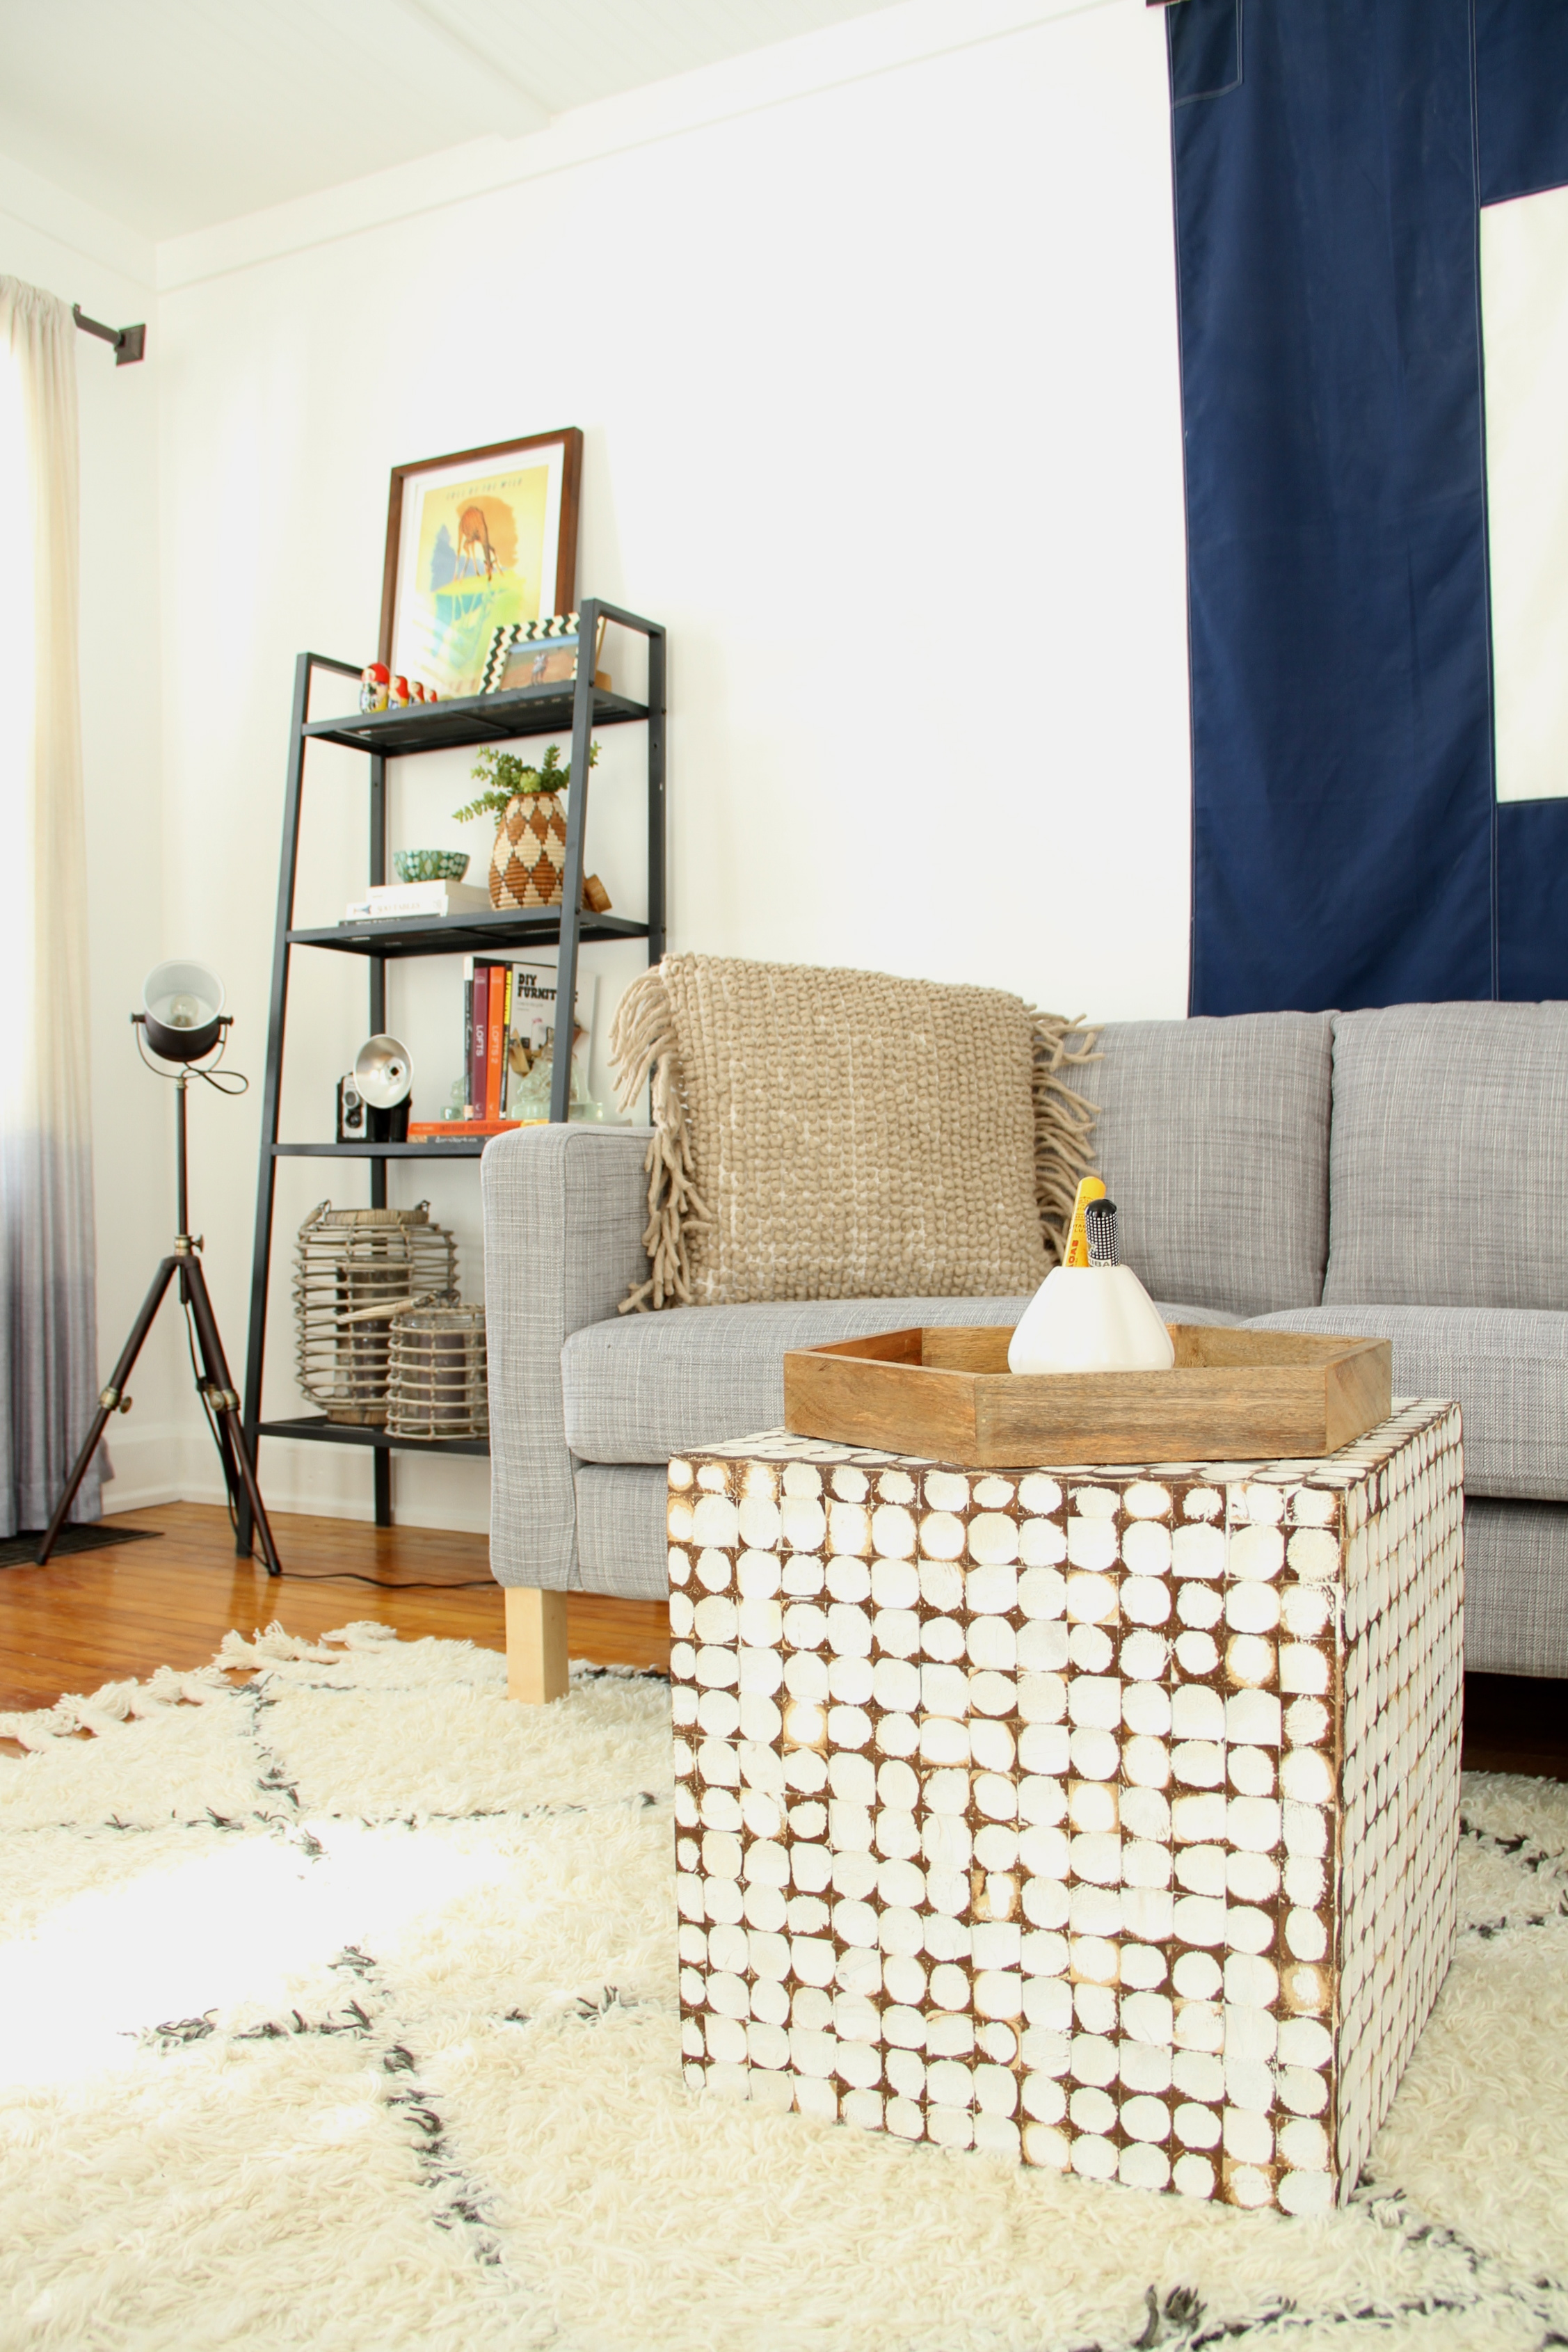 Living Room Changes | Lifestyle & Design Online